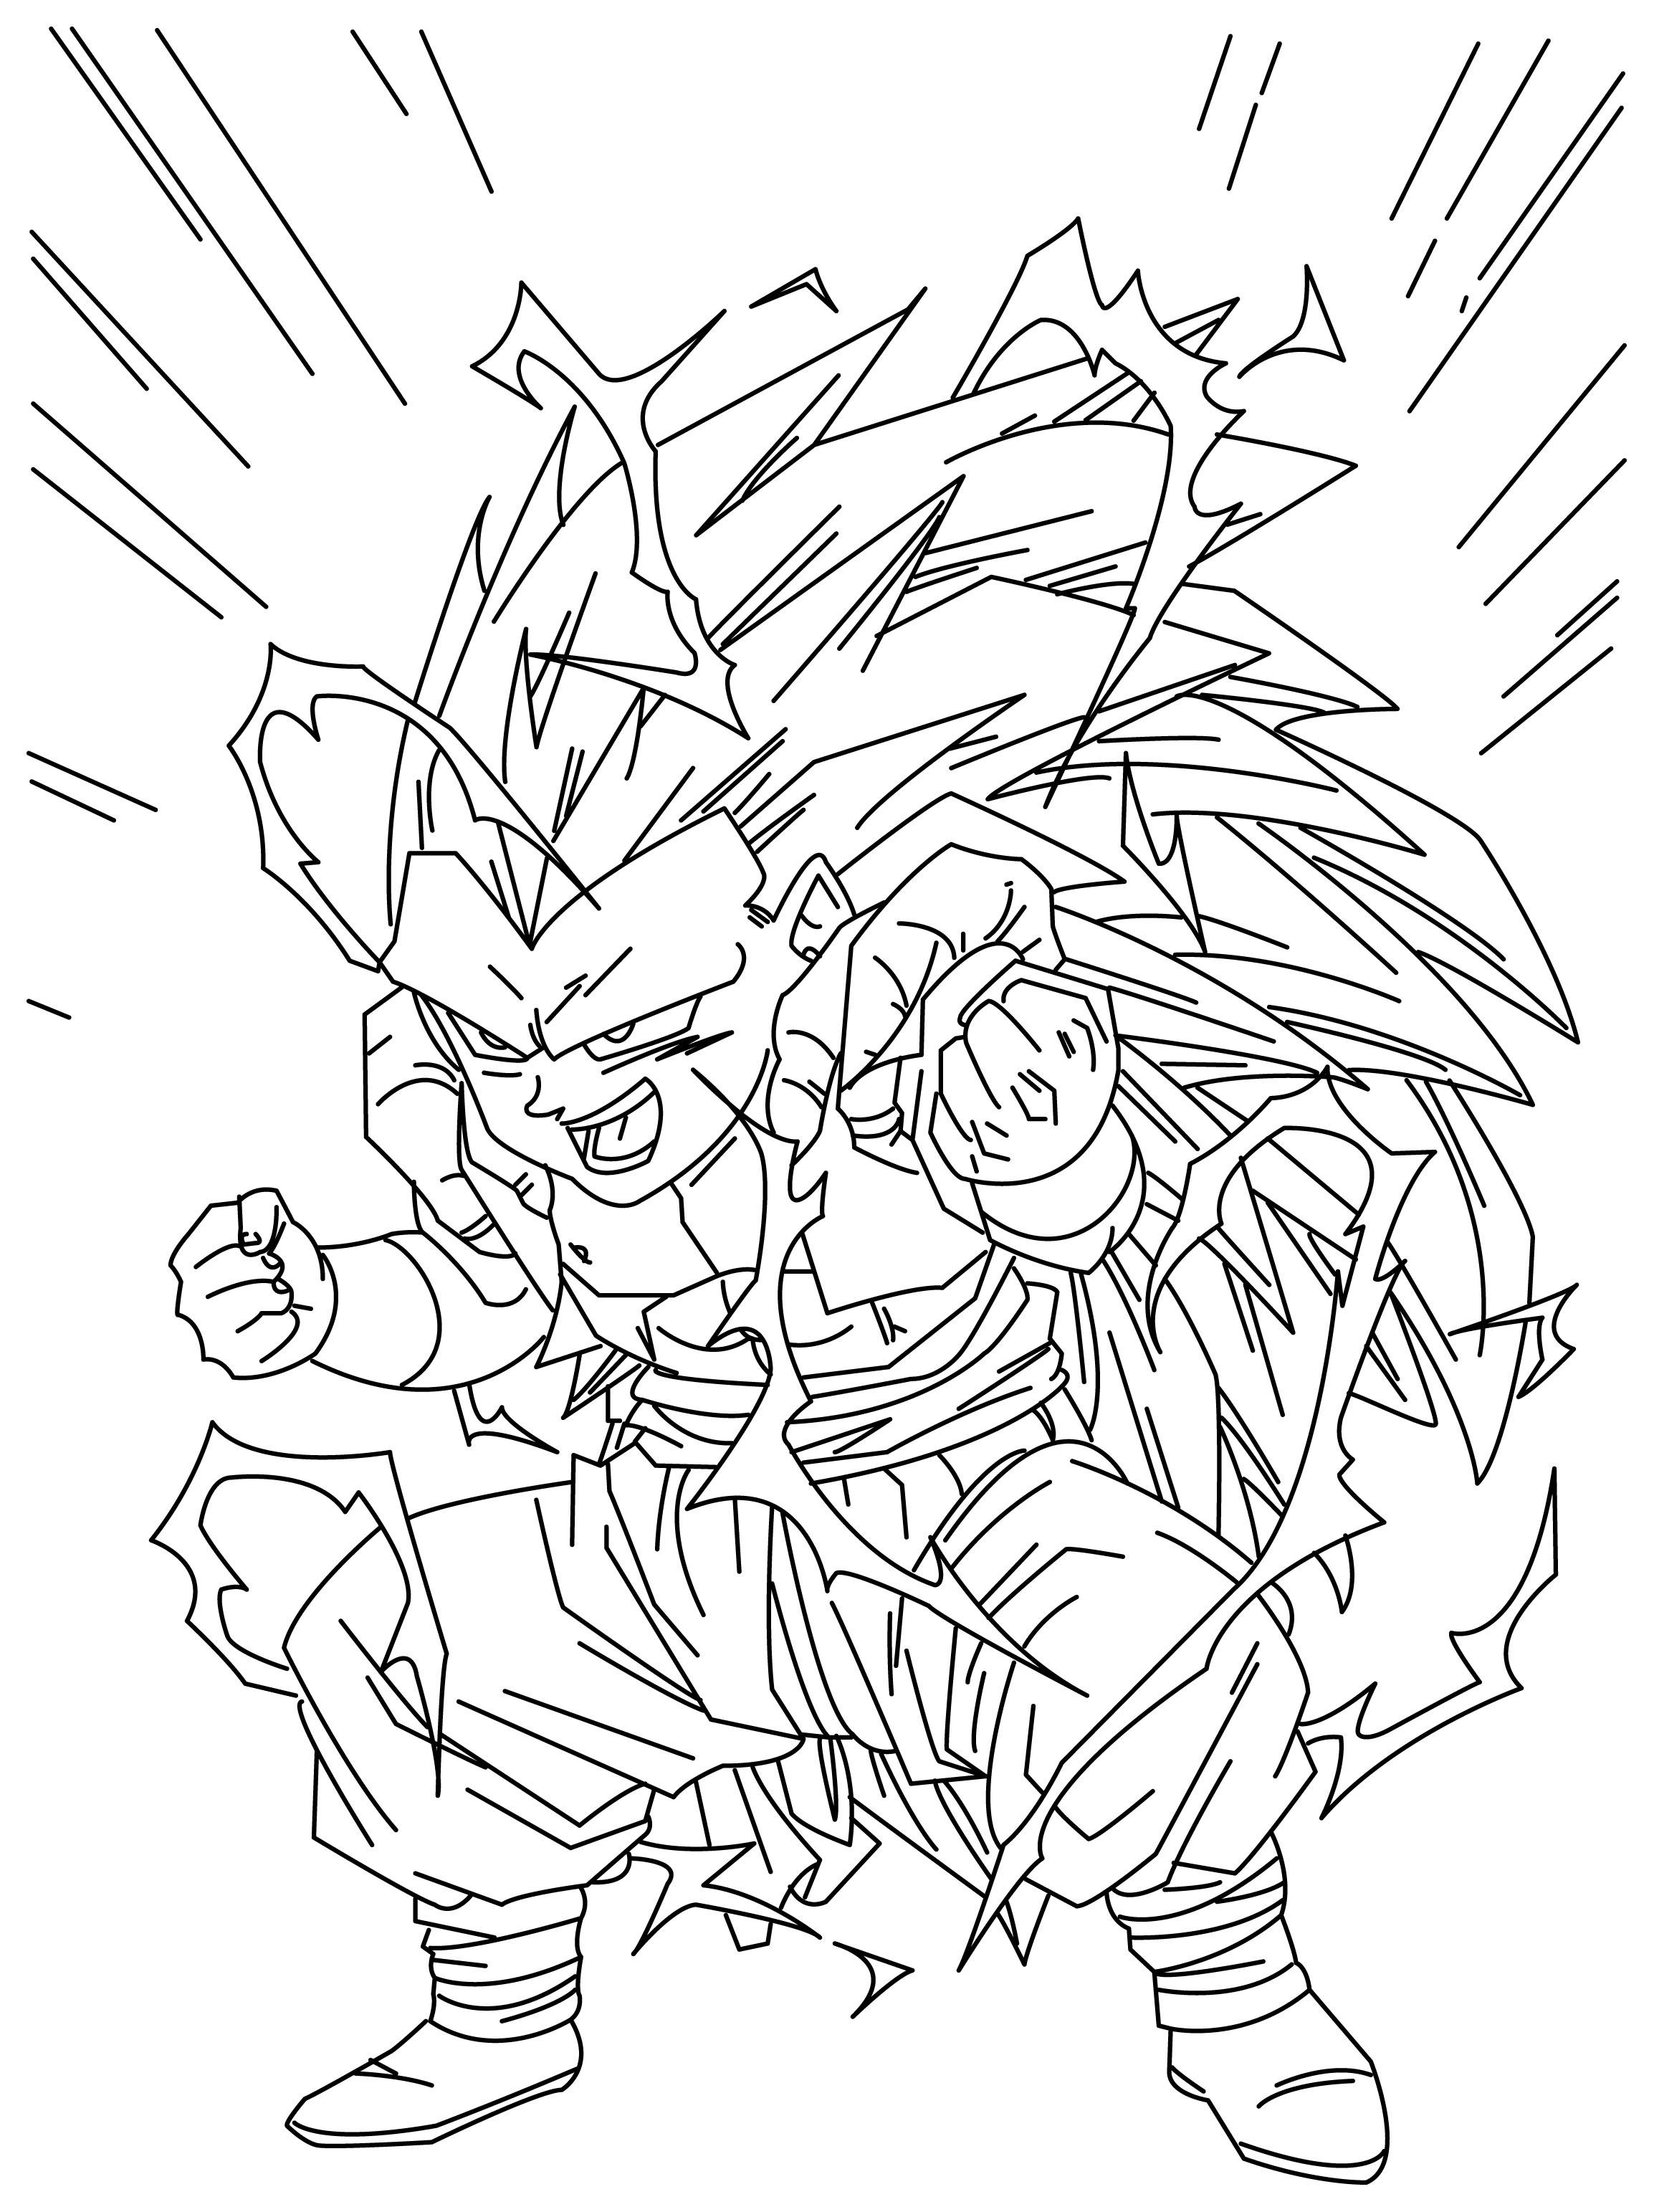 gotenks coloring pages - photo#39